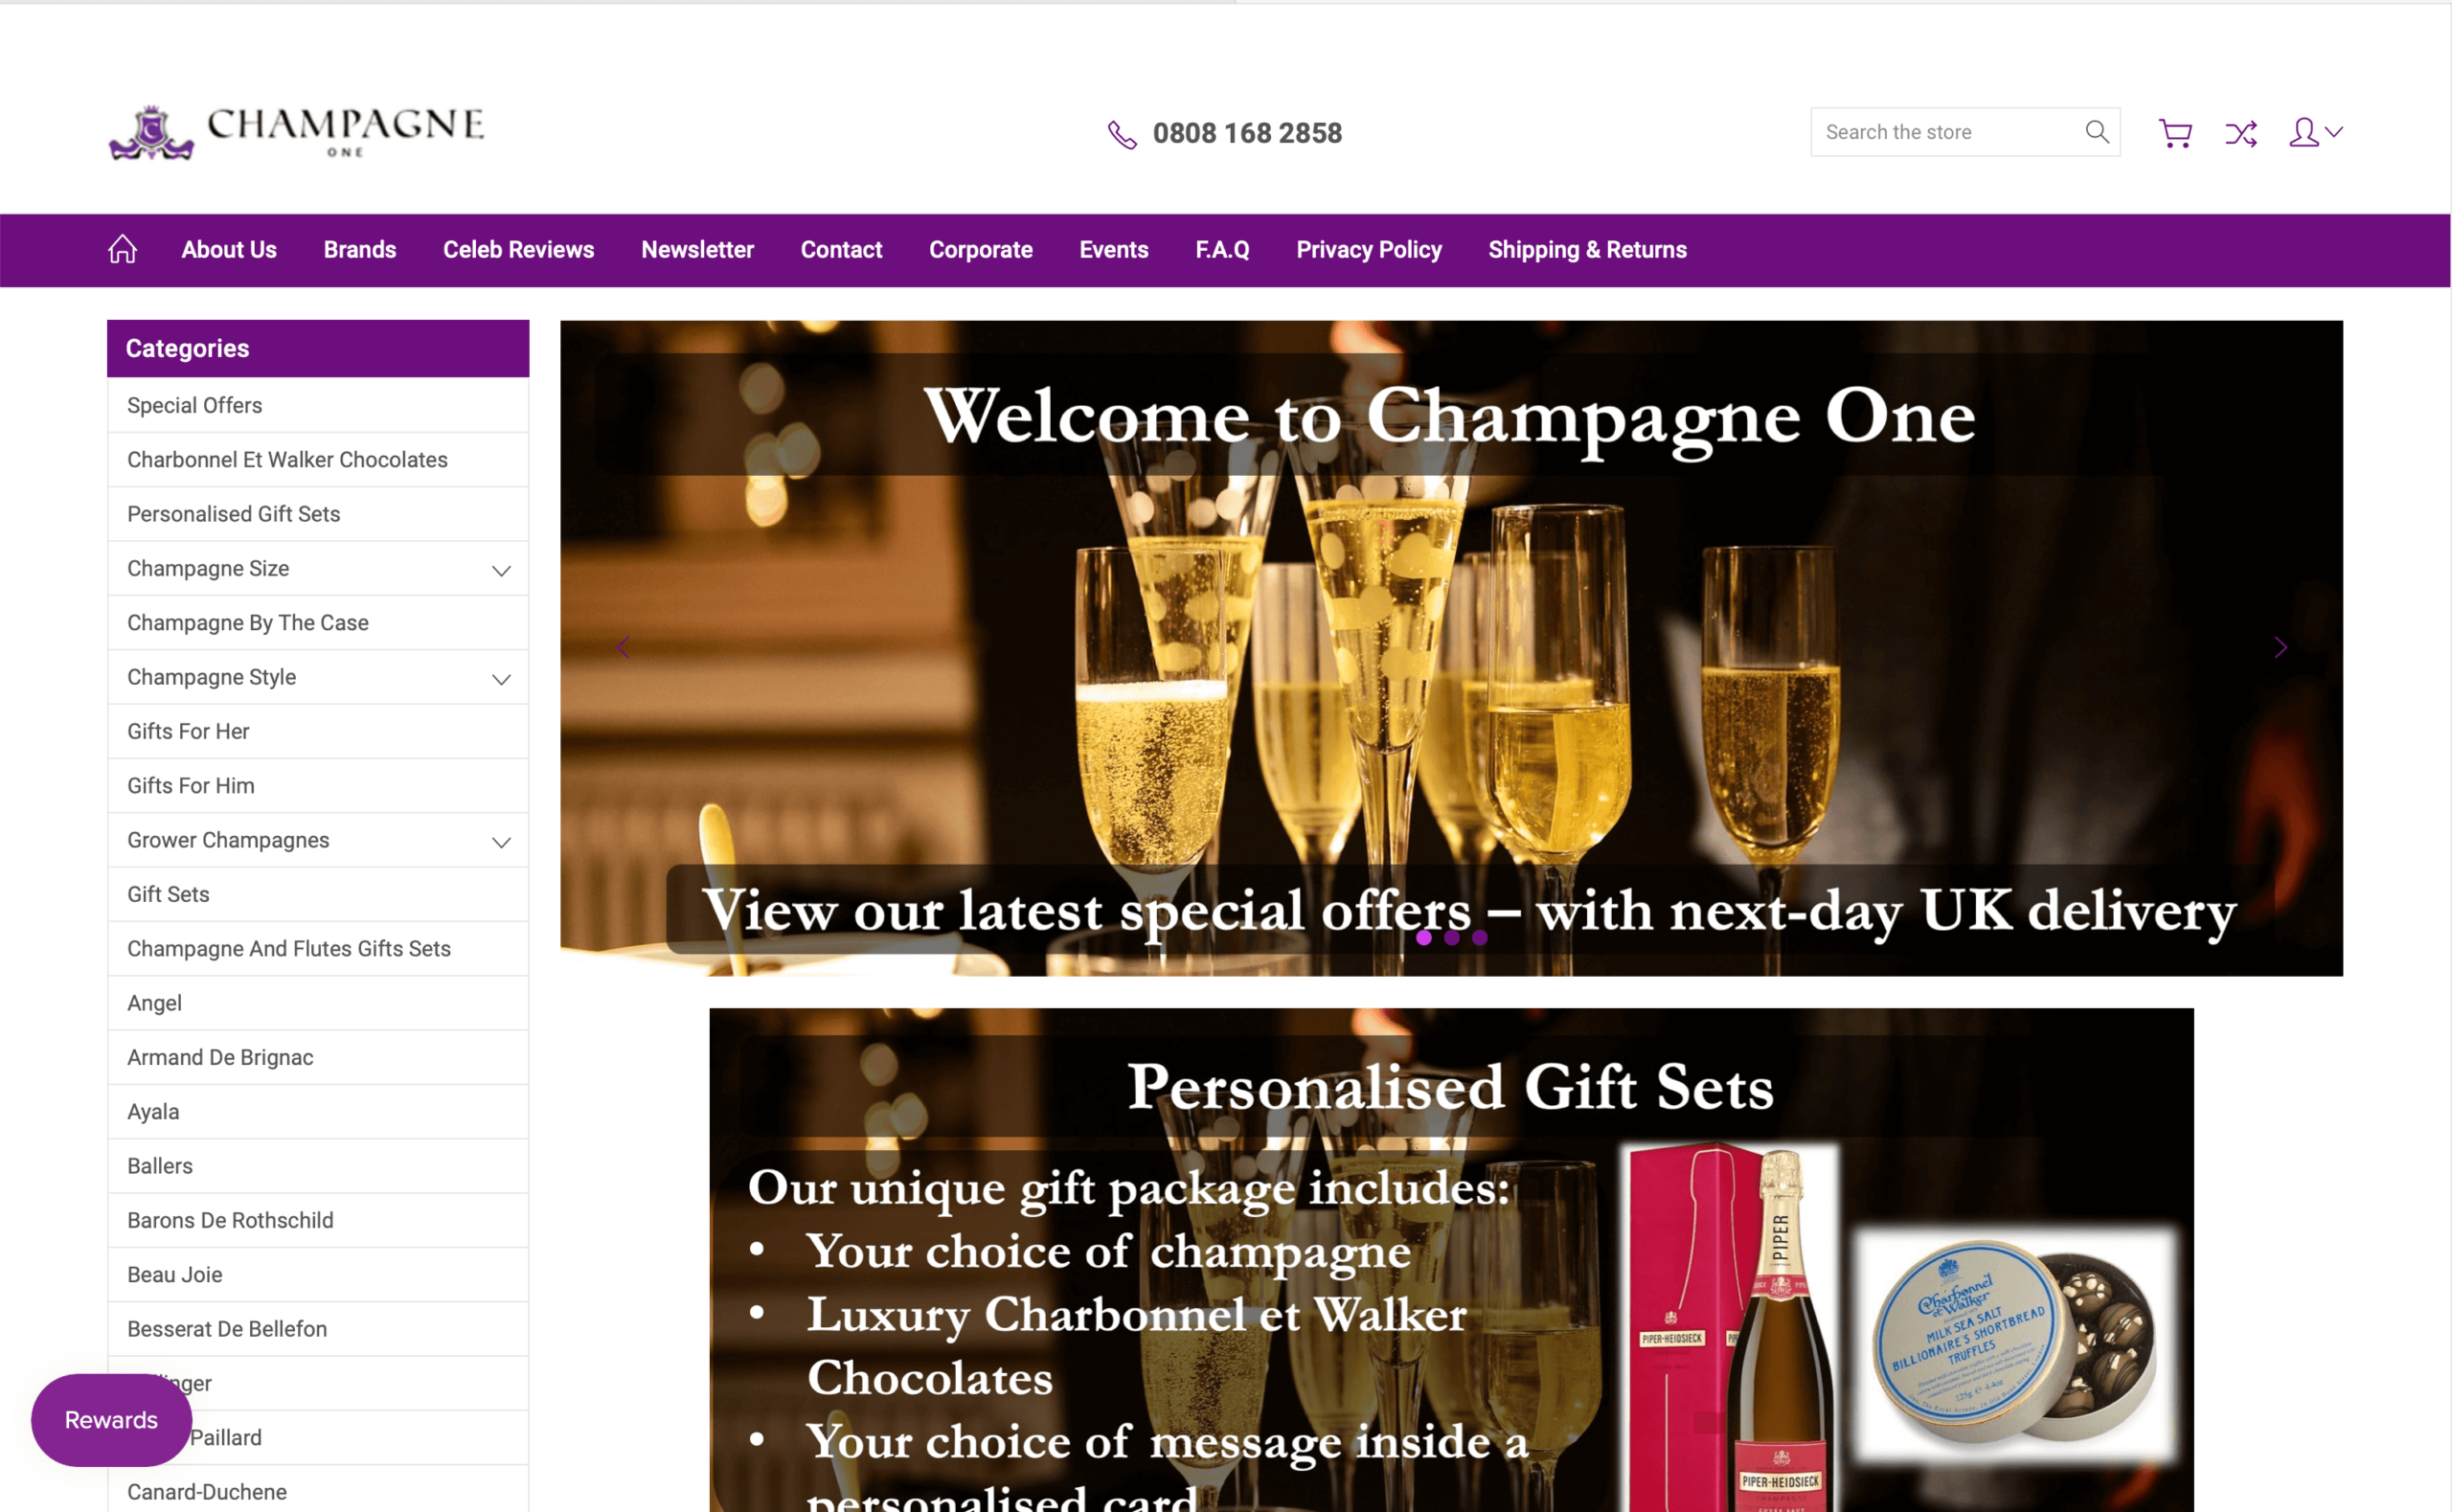 Champagne One: eCommerce retailer